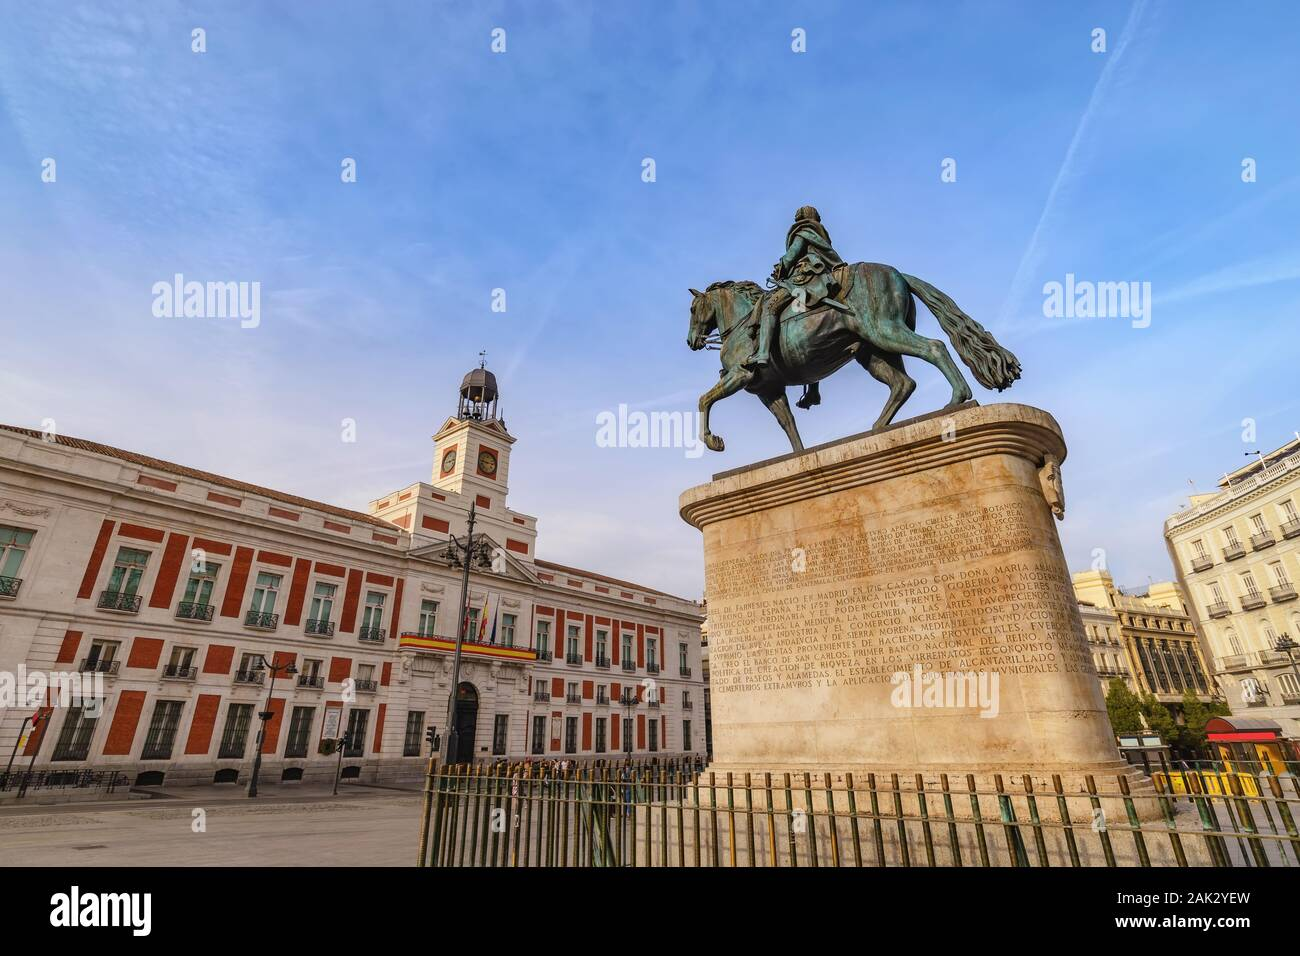 Madrid Spain, city skyline at Puerta del Sol and Clock Tower of Sun Gate with Equestrian Statue of Carlos III Stock Photo